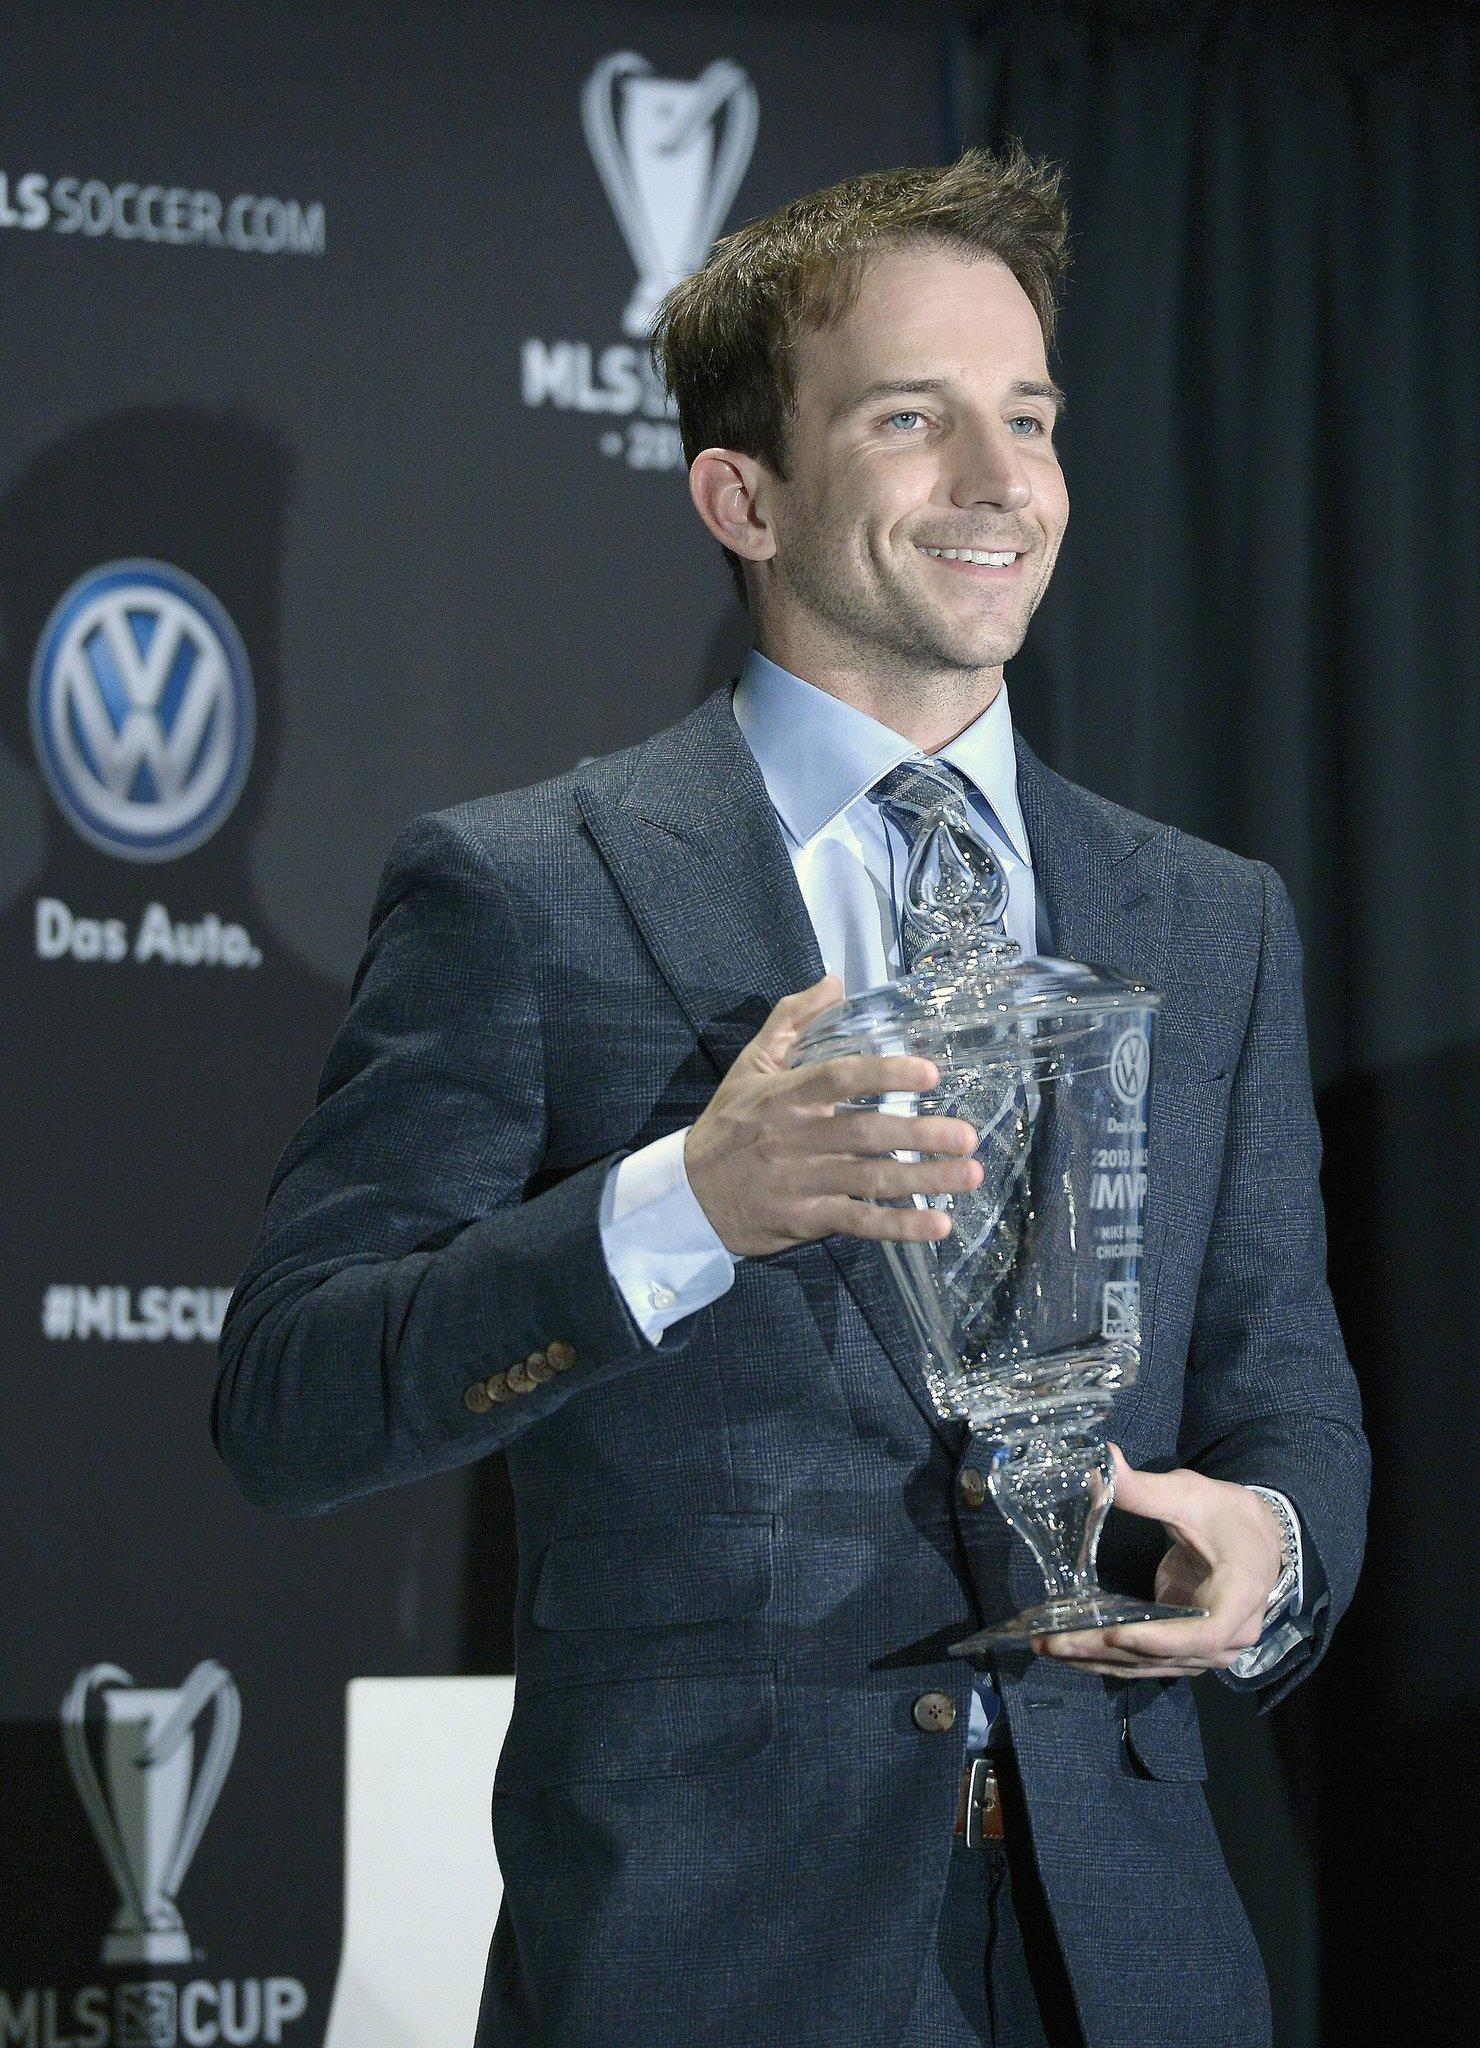 Major League Soccers most valuable player, Mike Magee of the Chicago Fire, holds the MVP trophy during Thursday's MLS Championship game press conference announcing his award in Kansas City, Mo., Dec. 5, 2013.